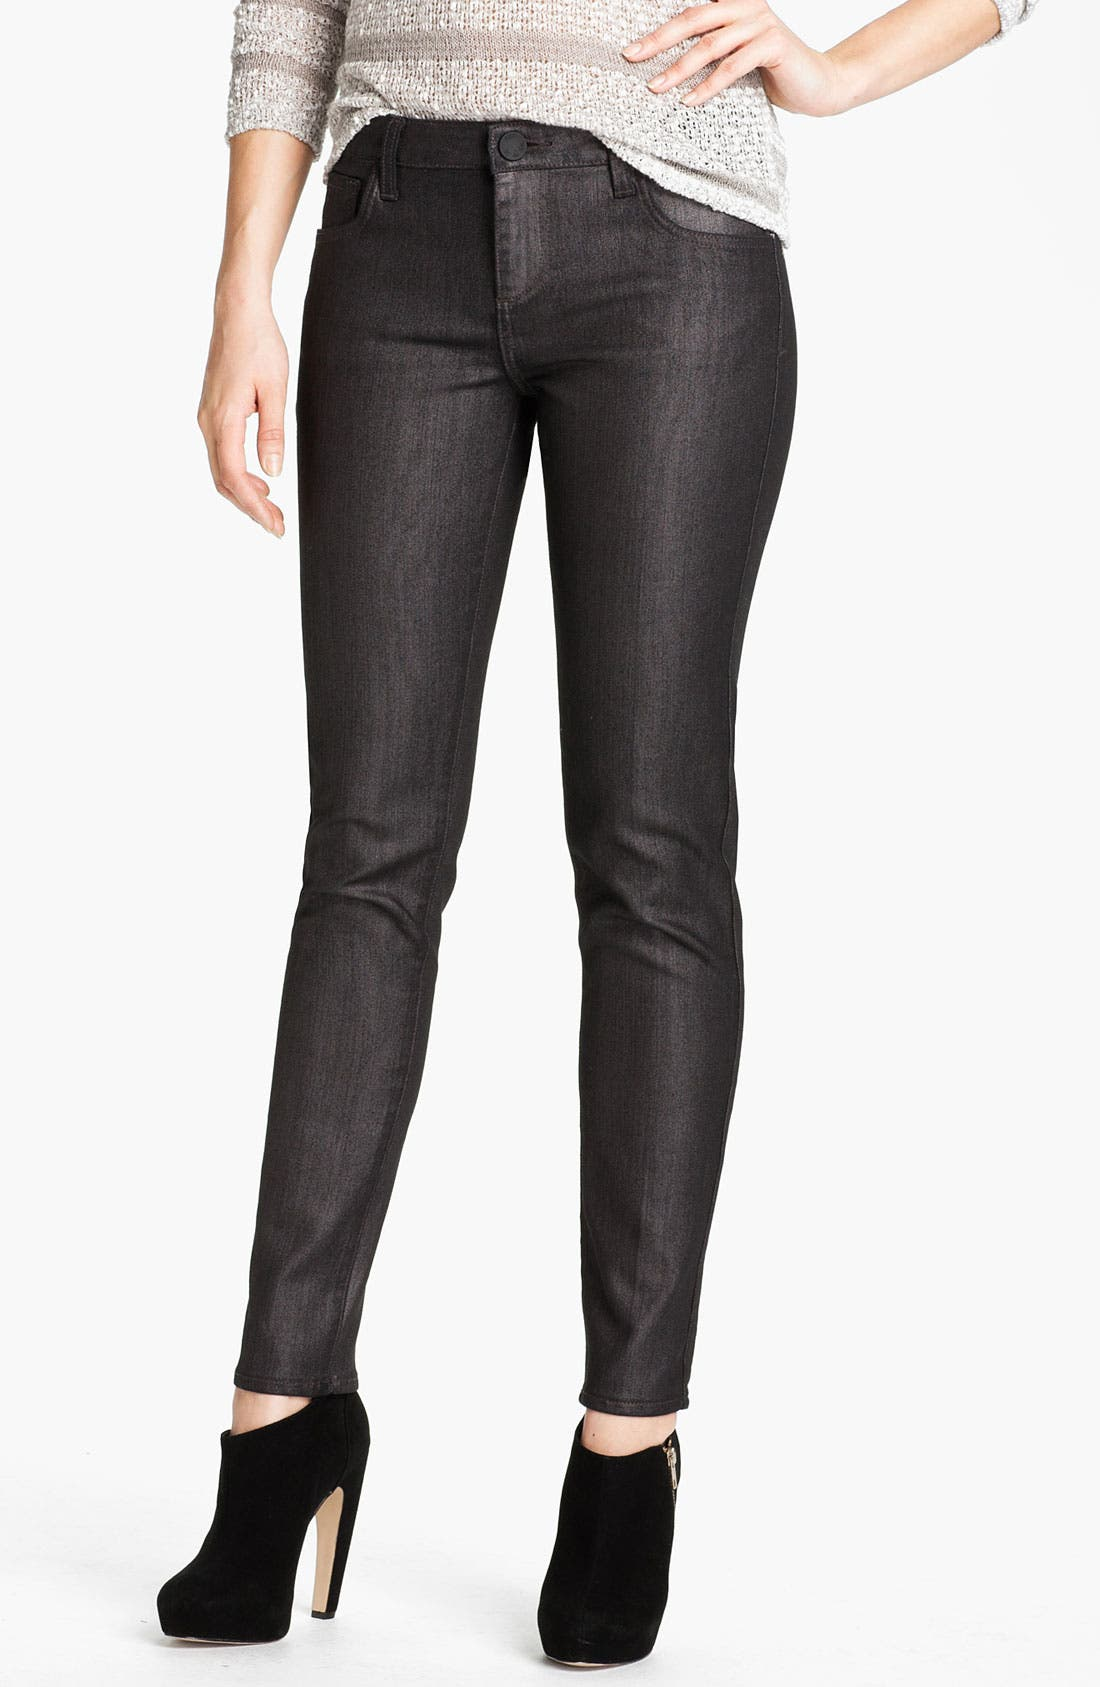 Alternate Image 1 Selected - KUT from the Kloth 'Jennifer' Skinny Stretch Jeans (Silver) (Online Exclusive)